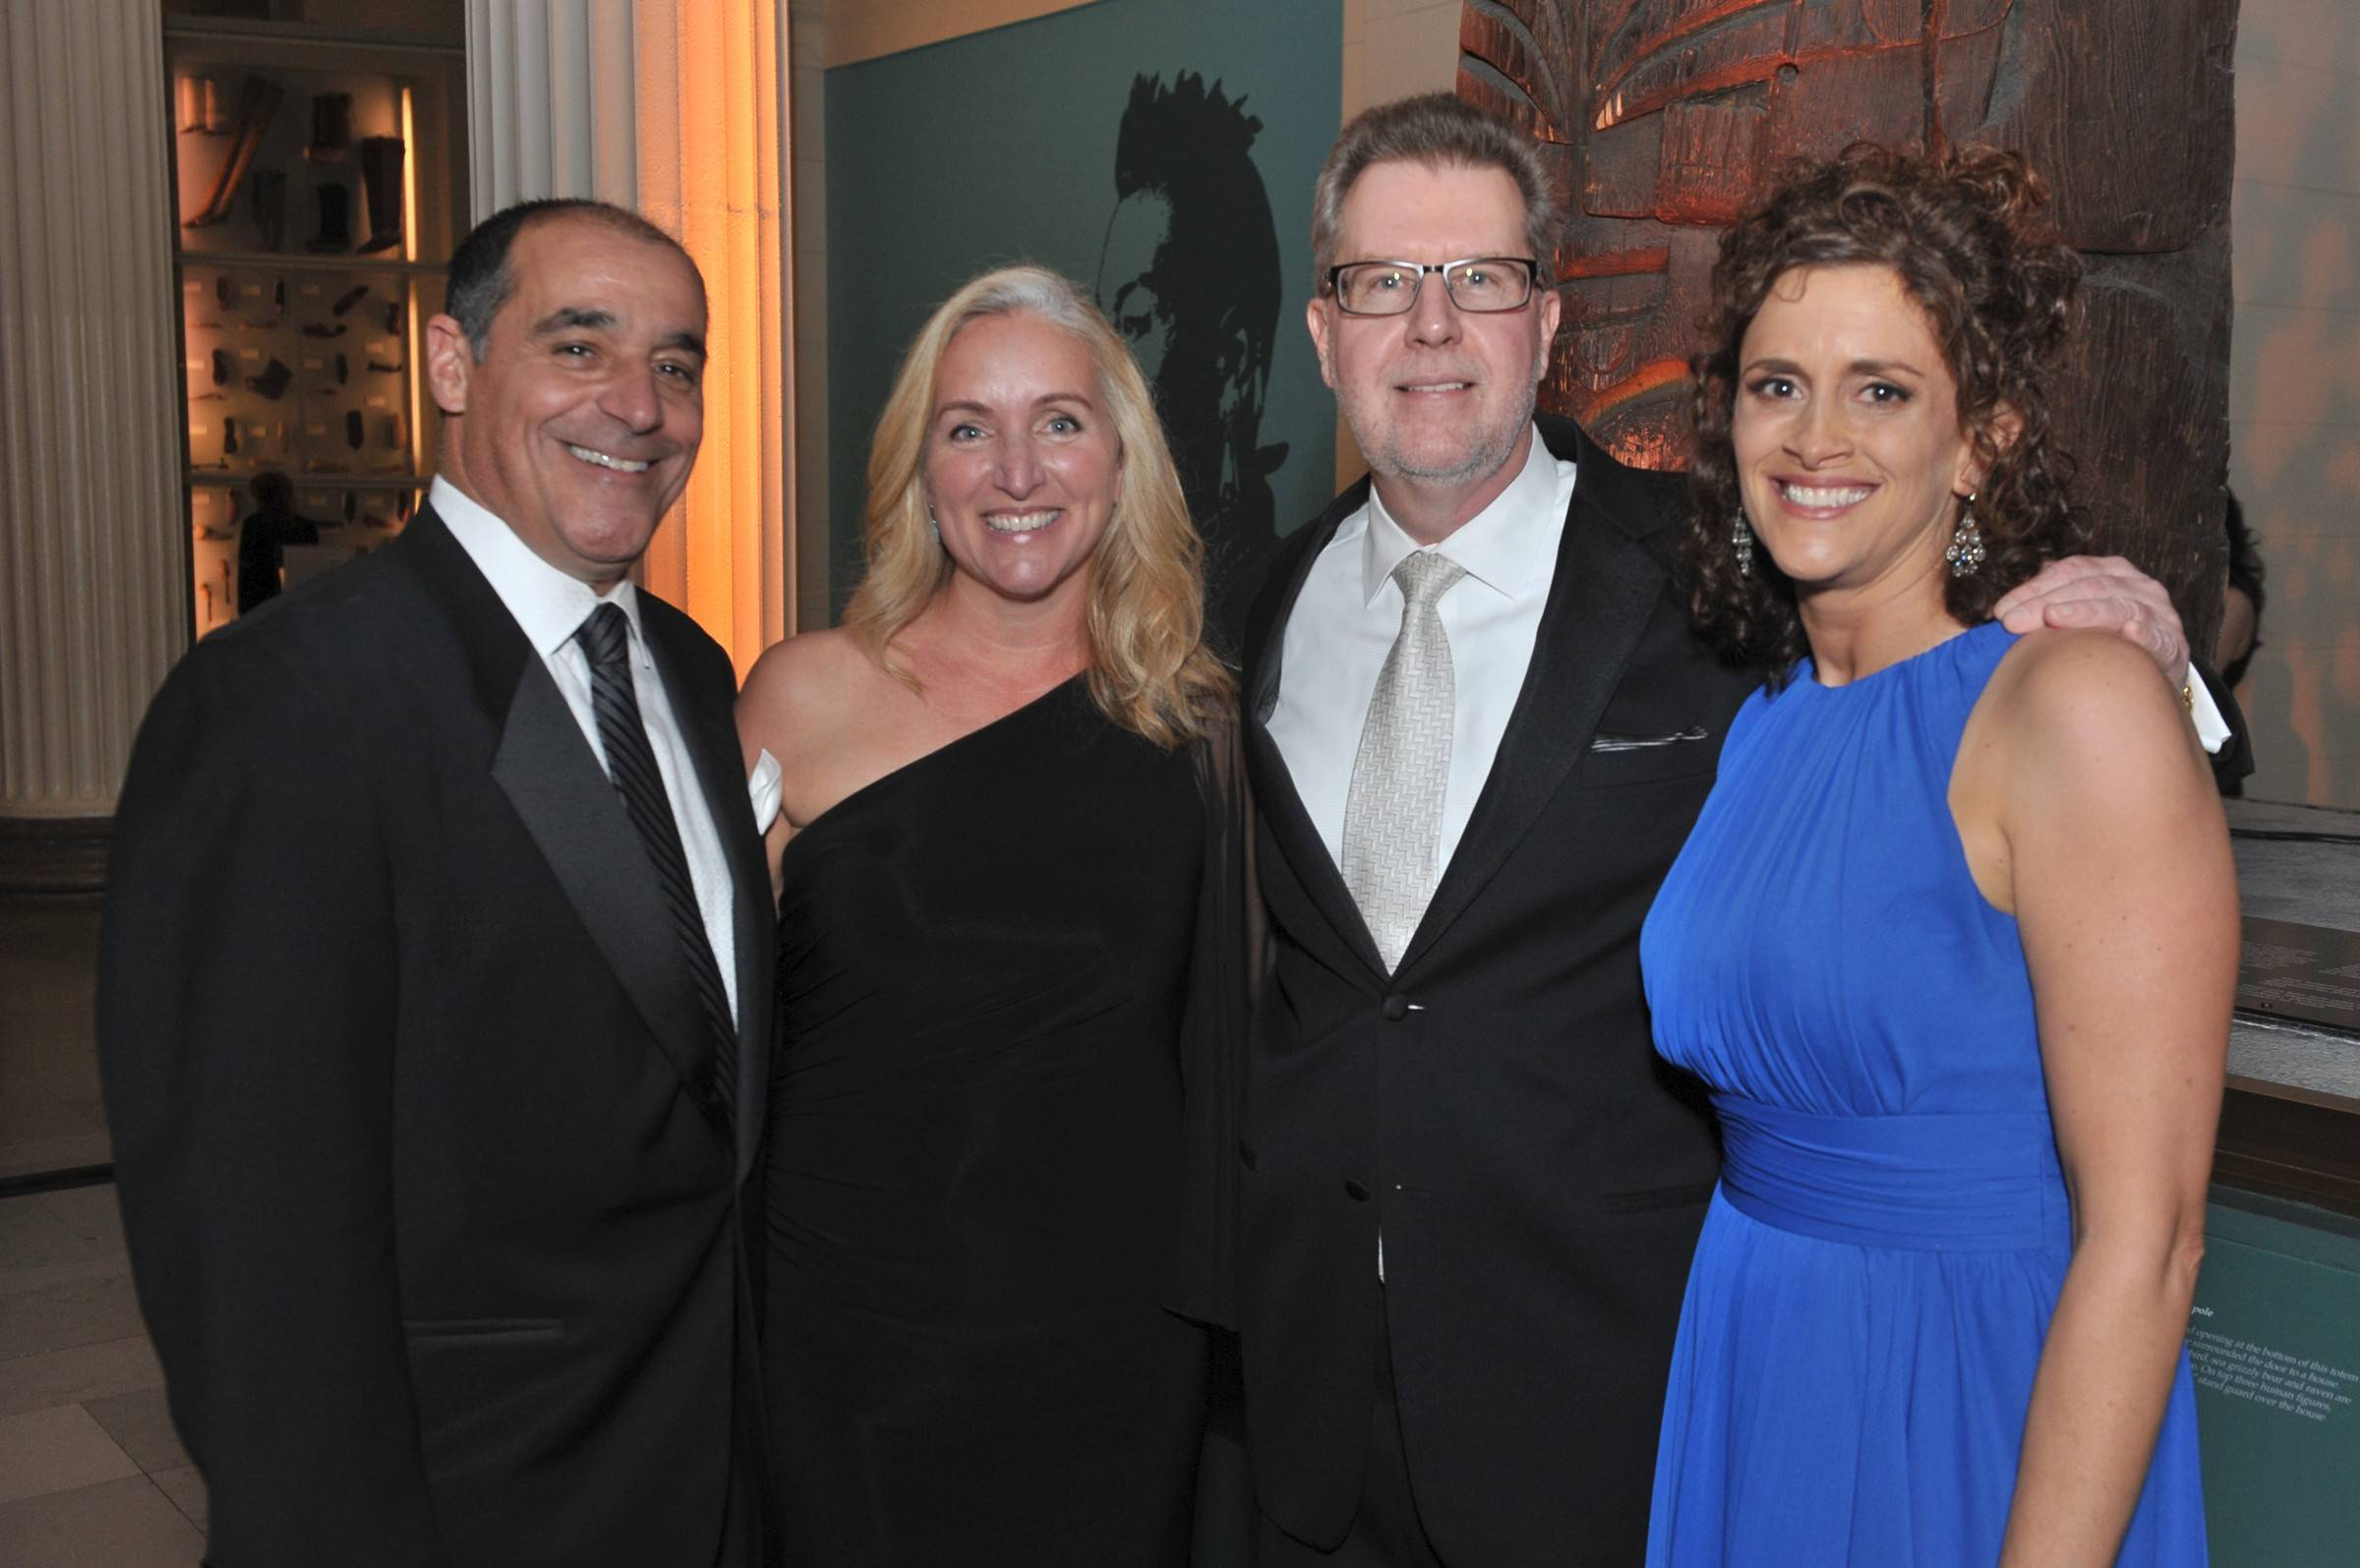 Jeff and Molly Karp of Crystal Lake with Mark Frey and Melanie Furlan. Jeff Karp is CEO of Power Construction Company, one of the Diamond Sponsors for the Alexian Brothers Ball de Fleur.